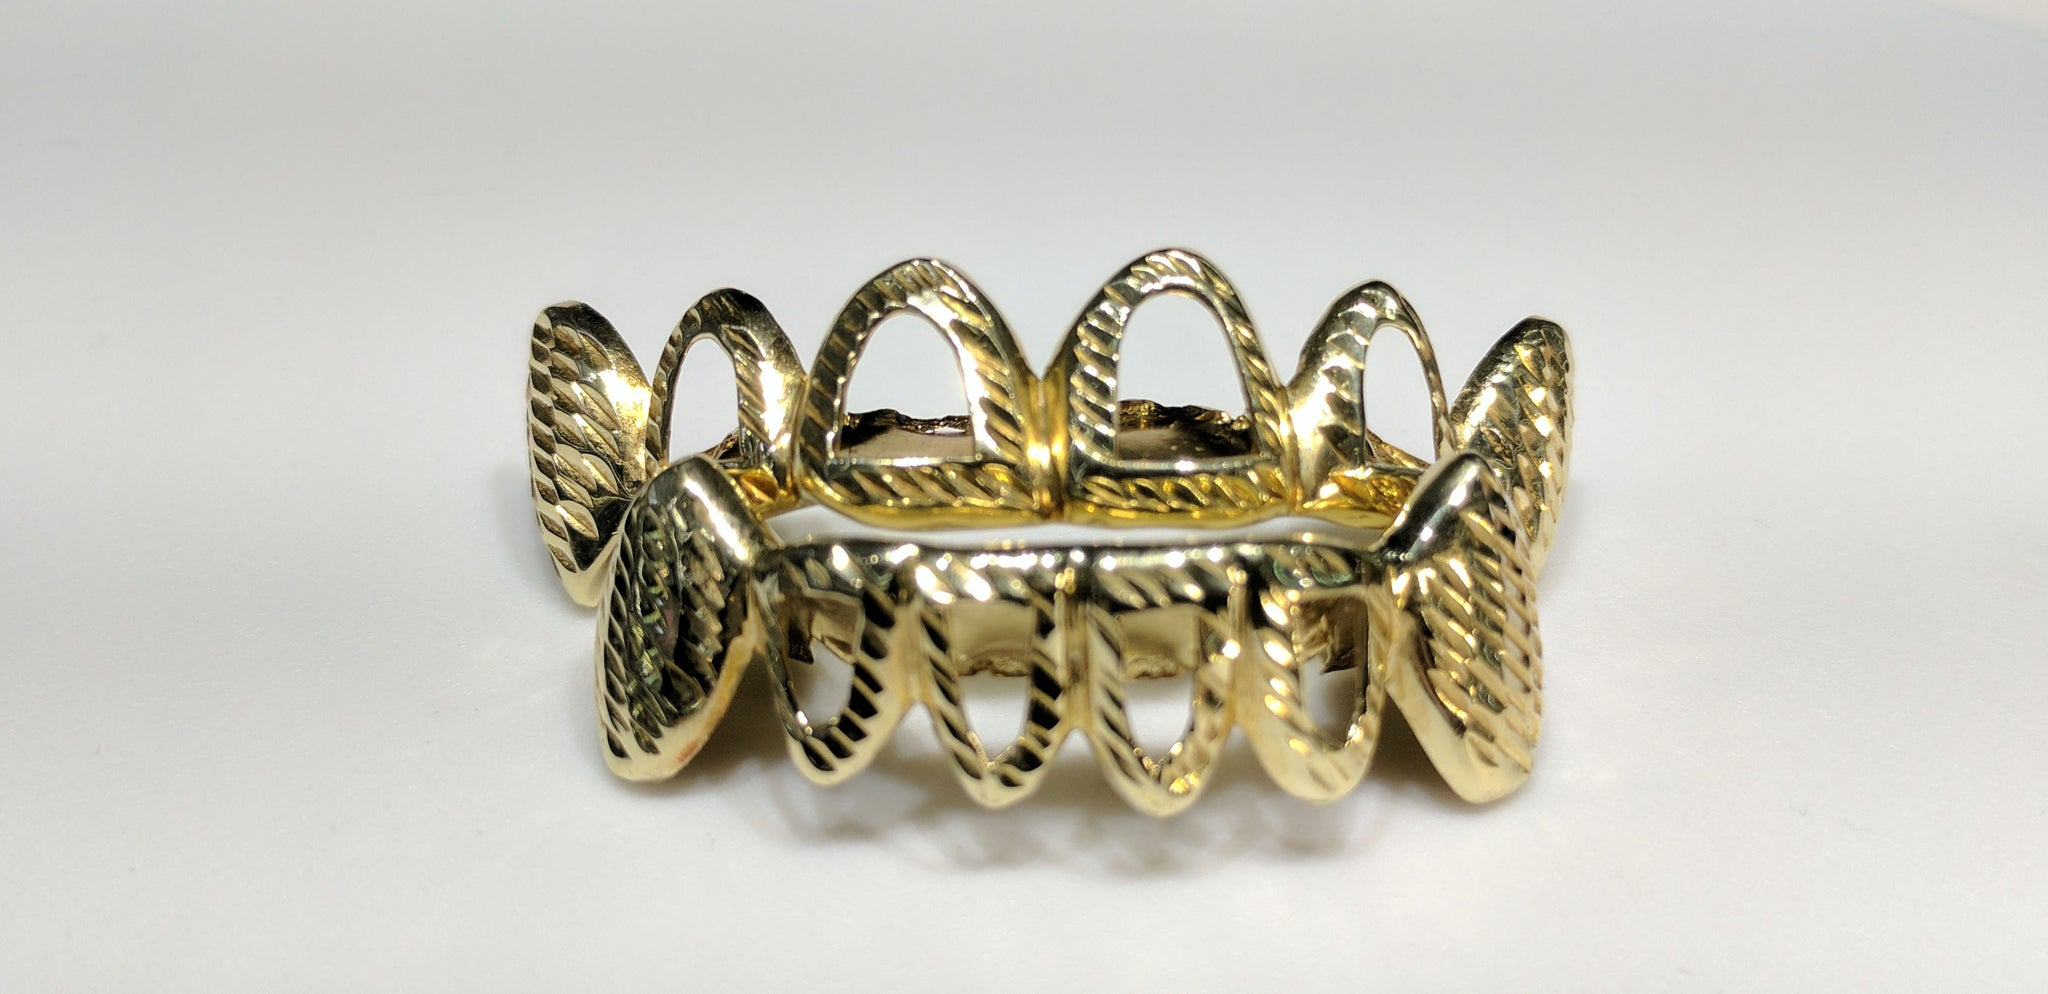 In the center: two sets of bottom and top custom made open face fang grills in 10 karat yellow gold with diamond cut finish made by Popular Jewelry in New York